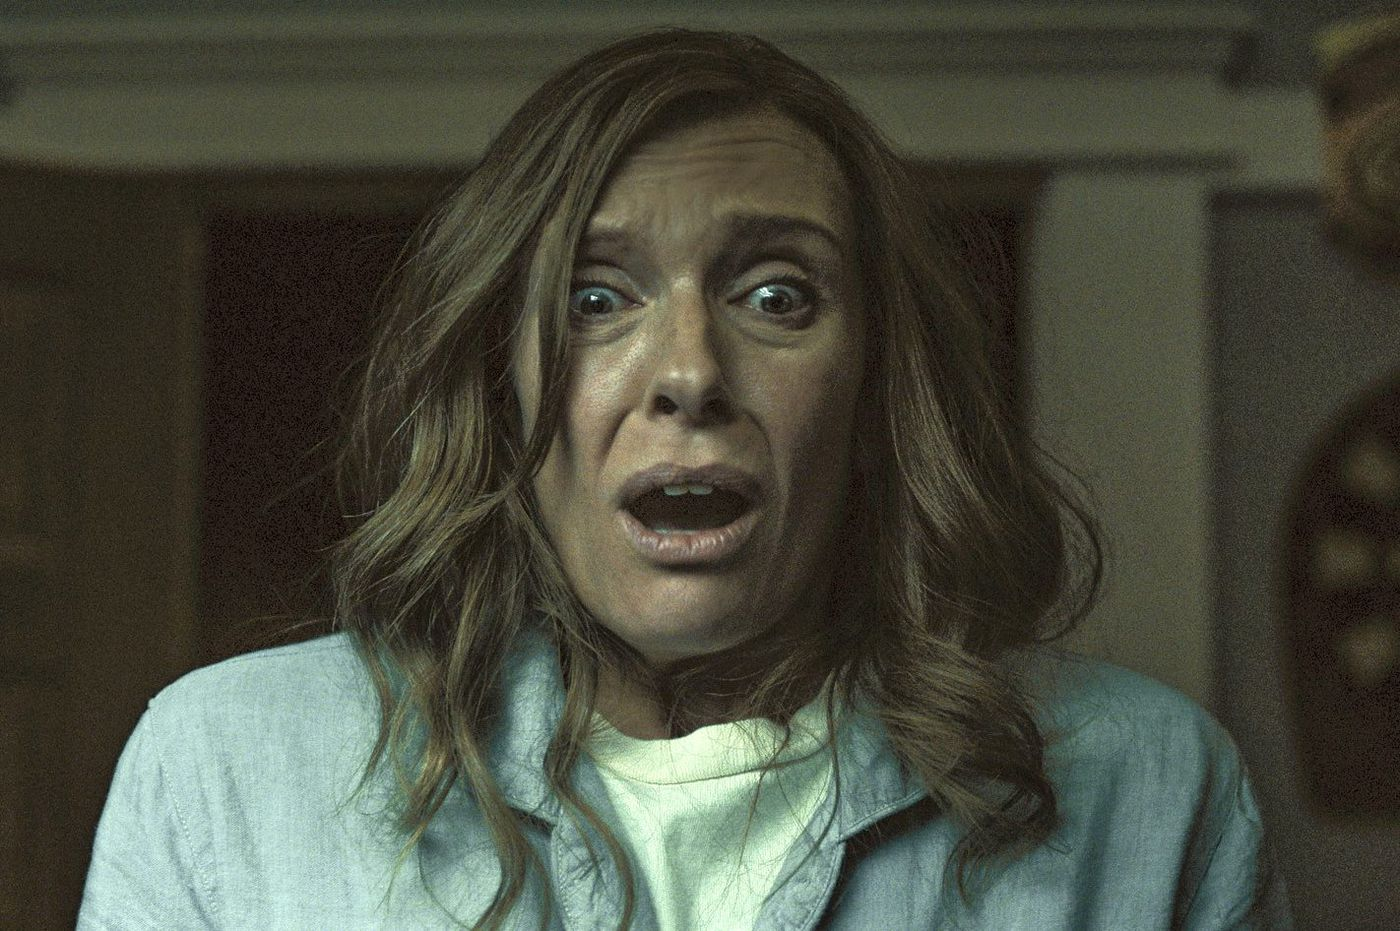 'Hereditary': Toni Collette is the main attraction of this old school horror movie layered thick with original ideas